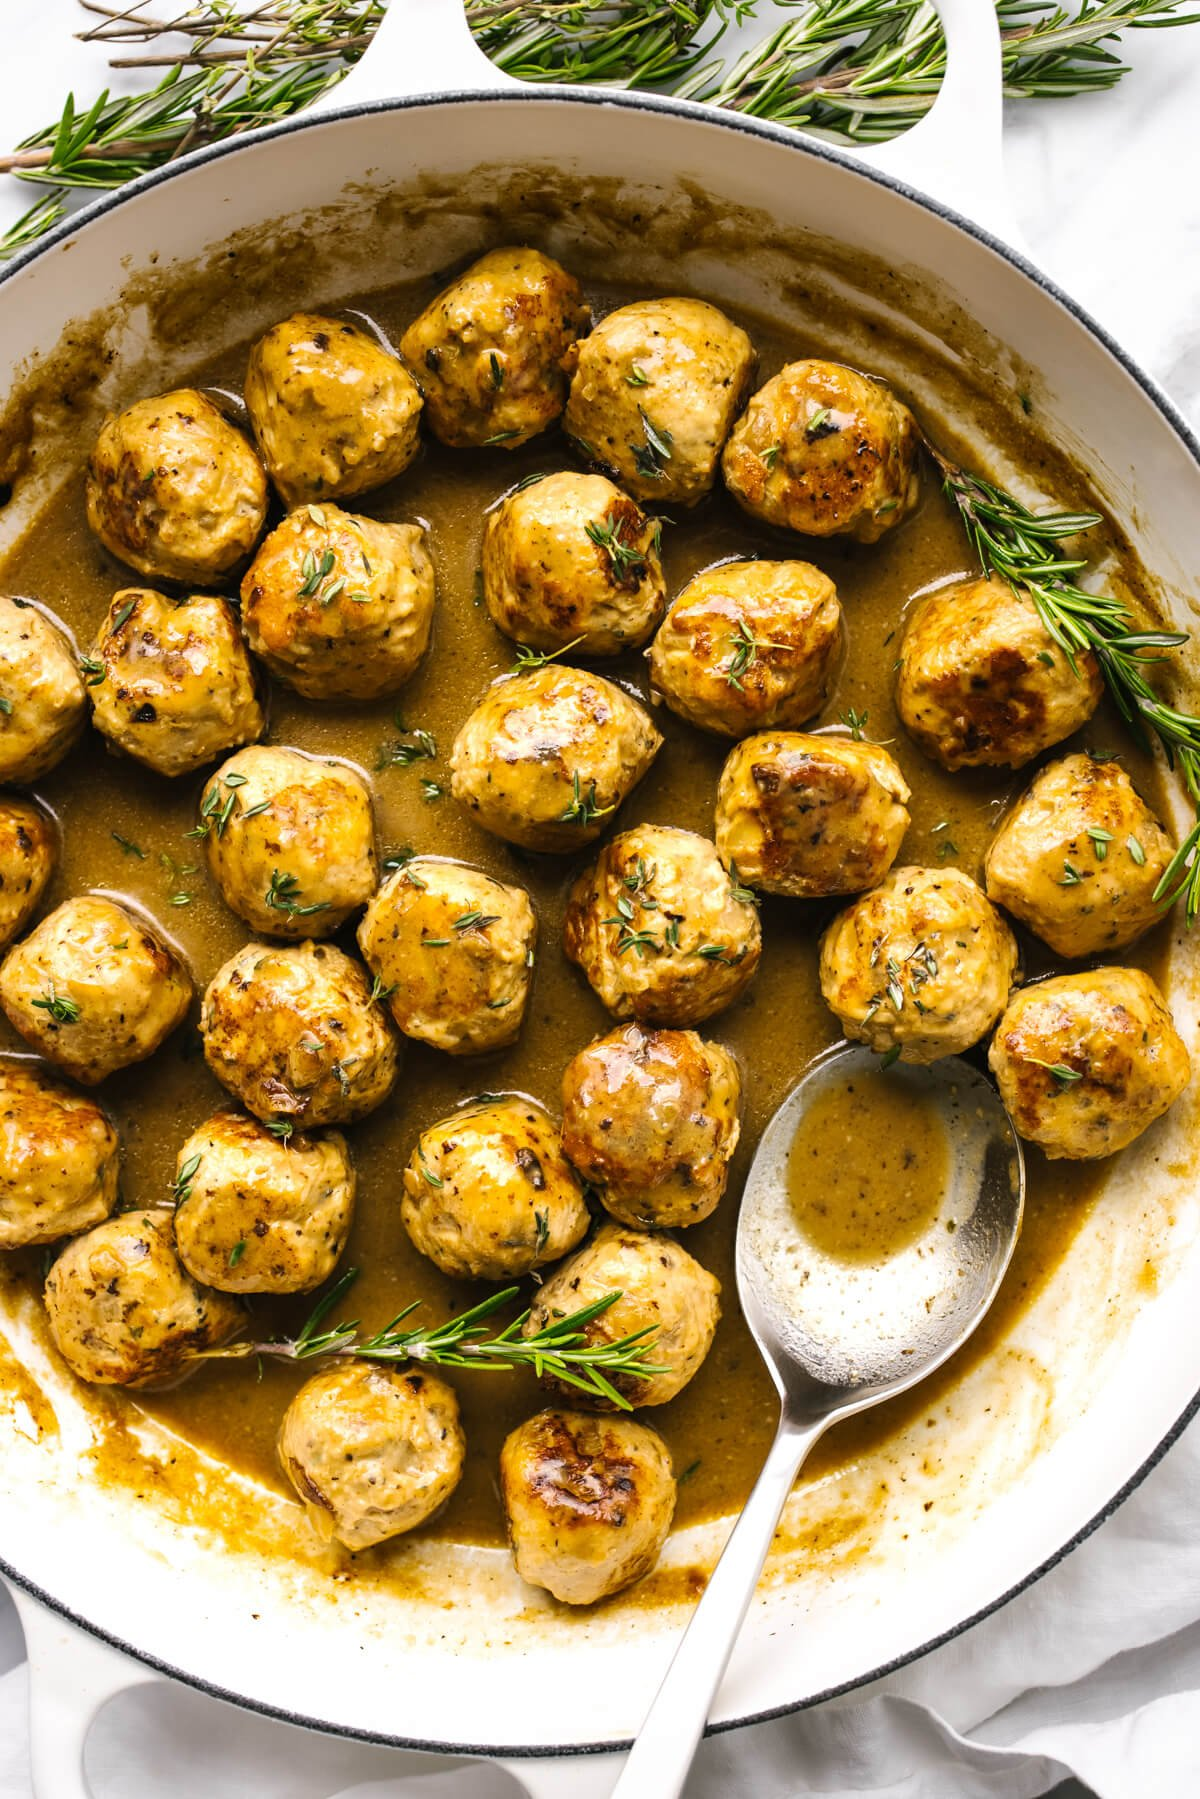 Turkey meatballs in a pan with maple mustard sauce with a spoon.